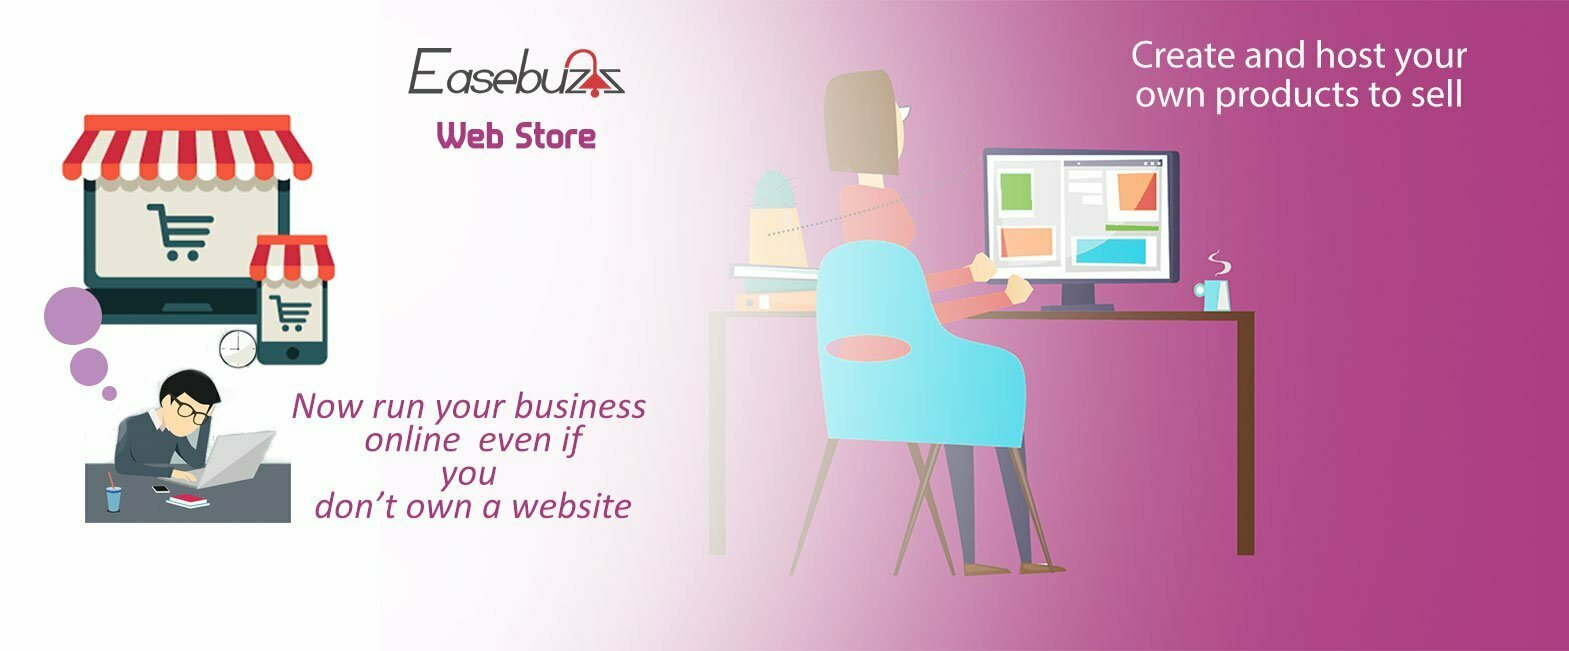 Easebuzz Webstore – Now run your business without a website